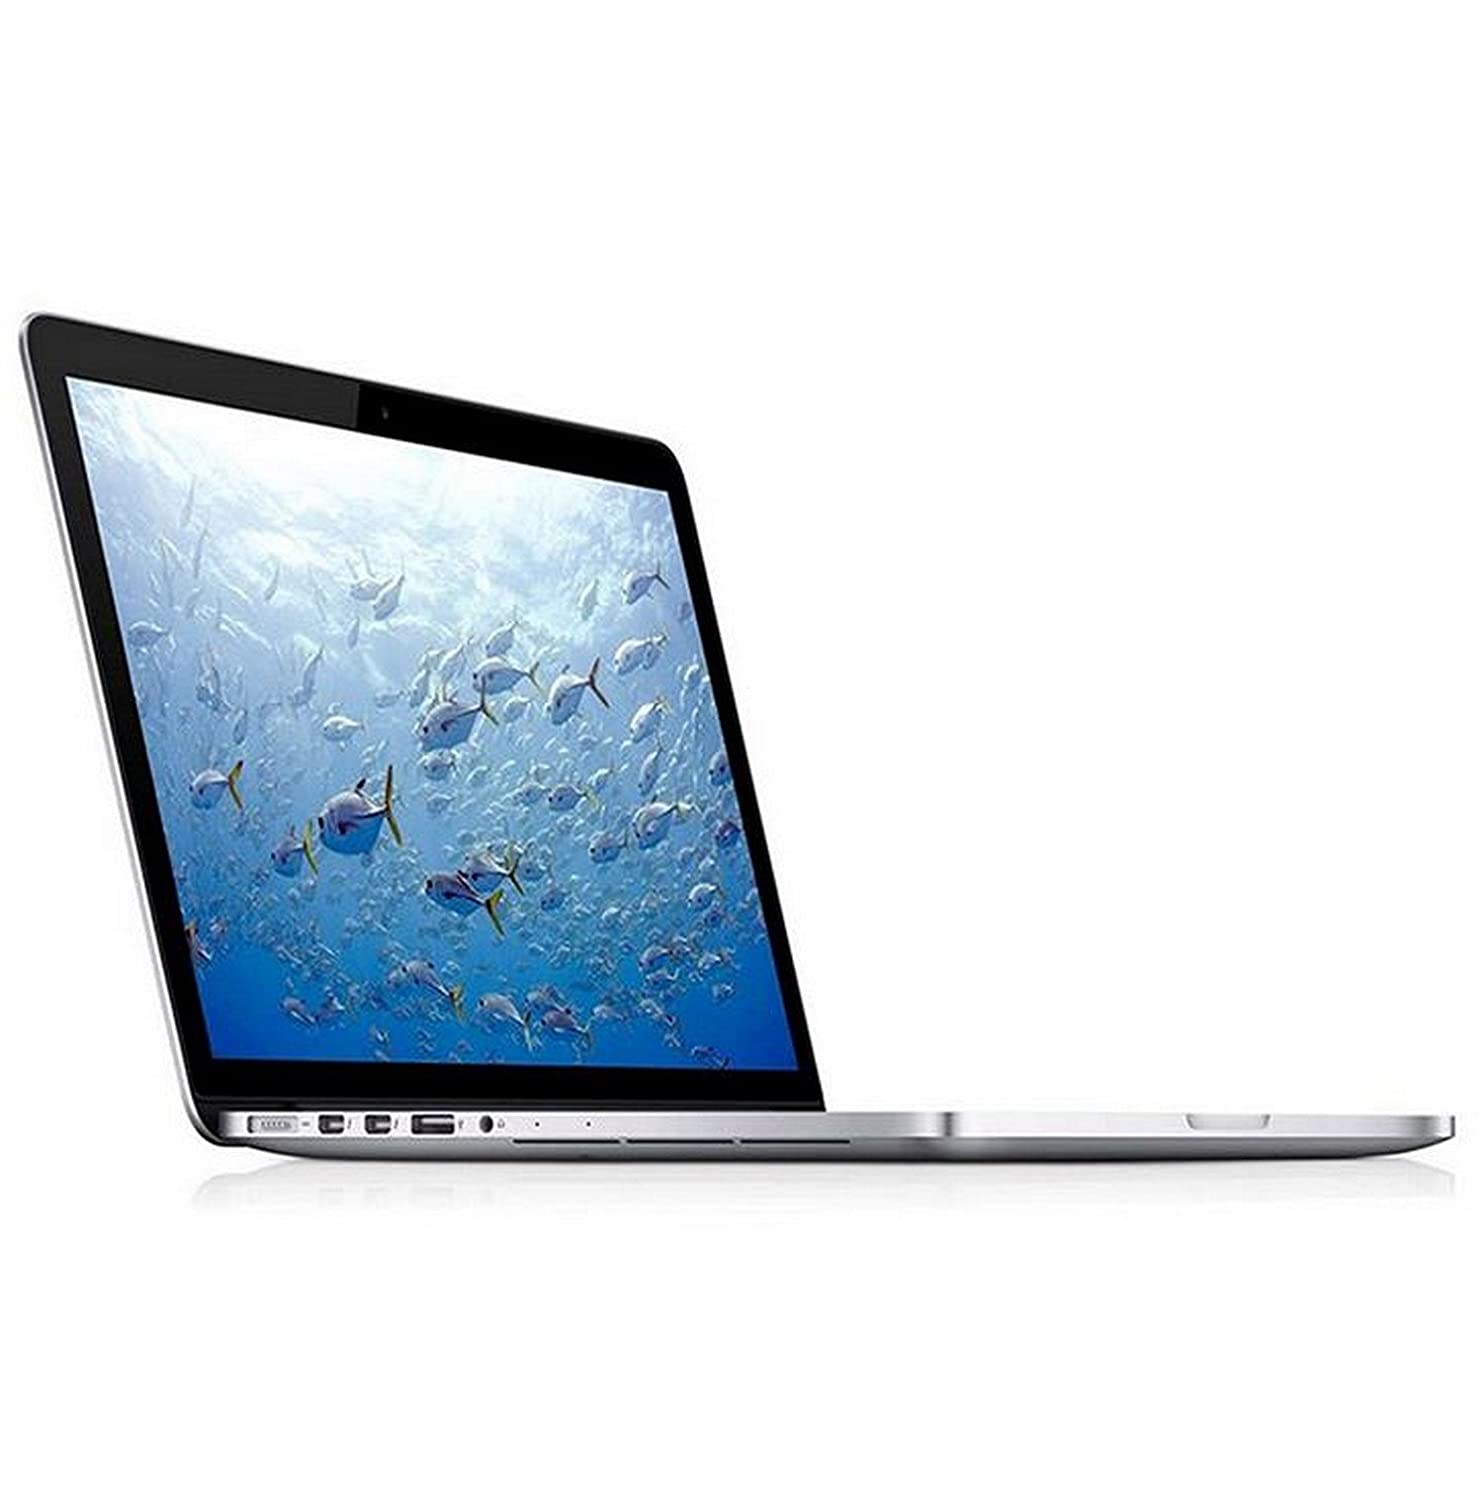 Buy Apple MacBook Pro MJLQ2HN A 15 inch Laptop Core i7 16GB 256GB